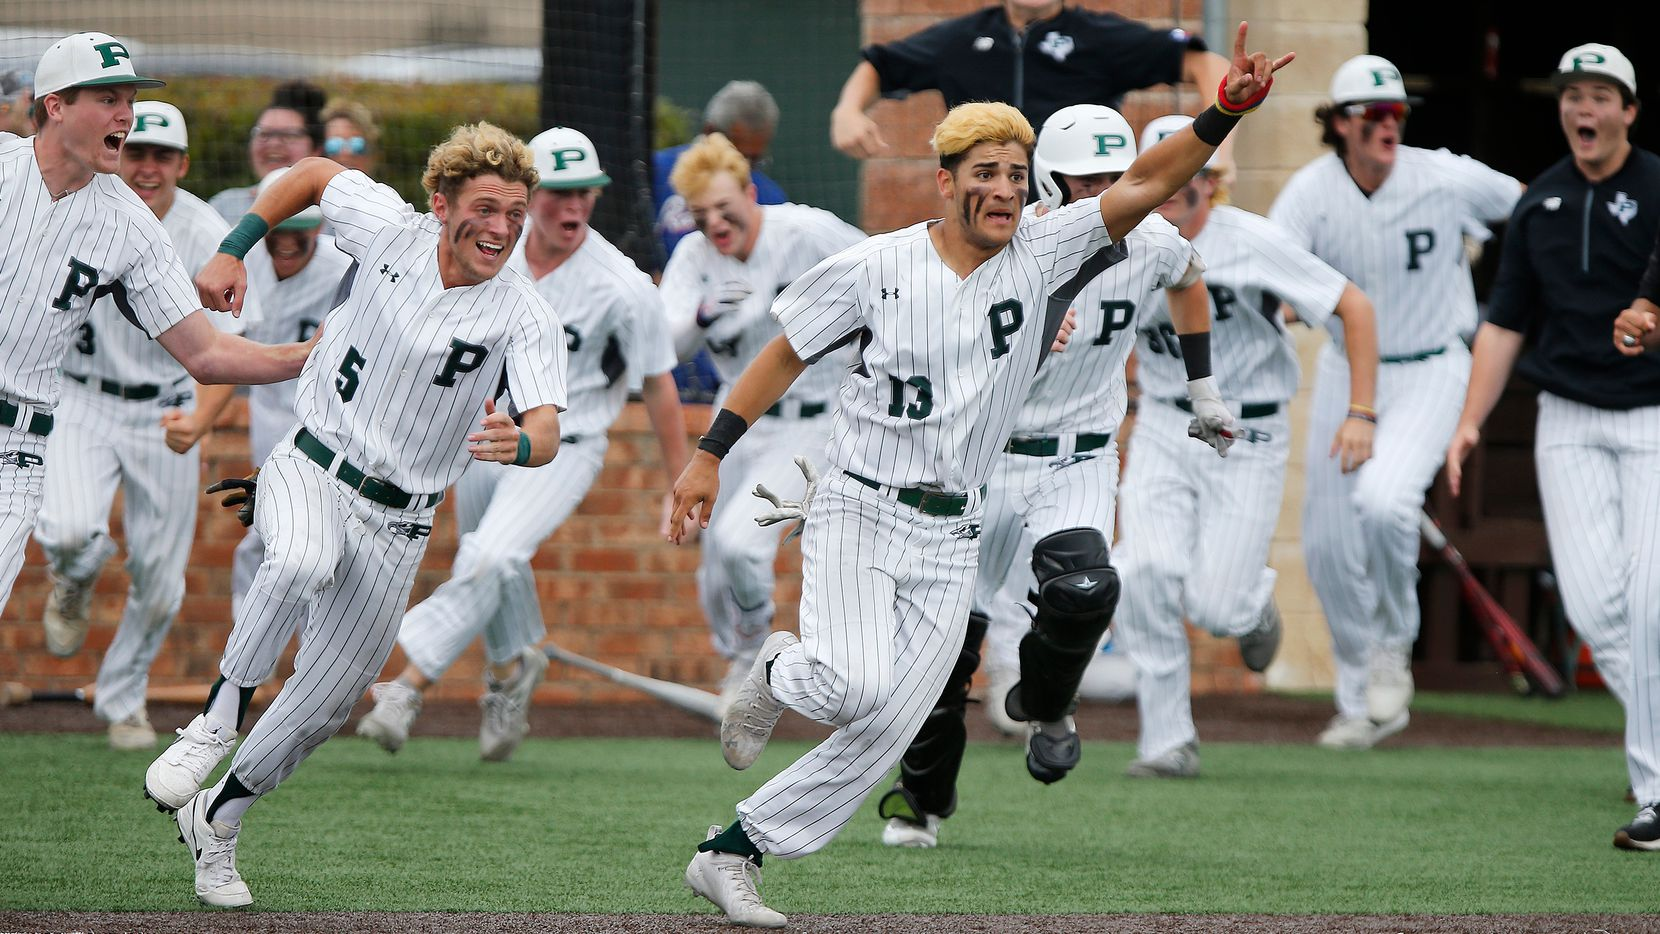 Gabriel Colina (13) leads his team sprinting out of the dugout after completing a come from behind win in their last at bat as Prosper High School hosted Arlington Martin High School in a series final 6A Region I area round playoff game on Saturday afternoon, May 15, 2021. (Stewart F. House/Special Contributor)